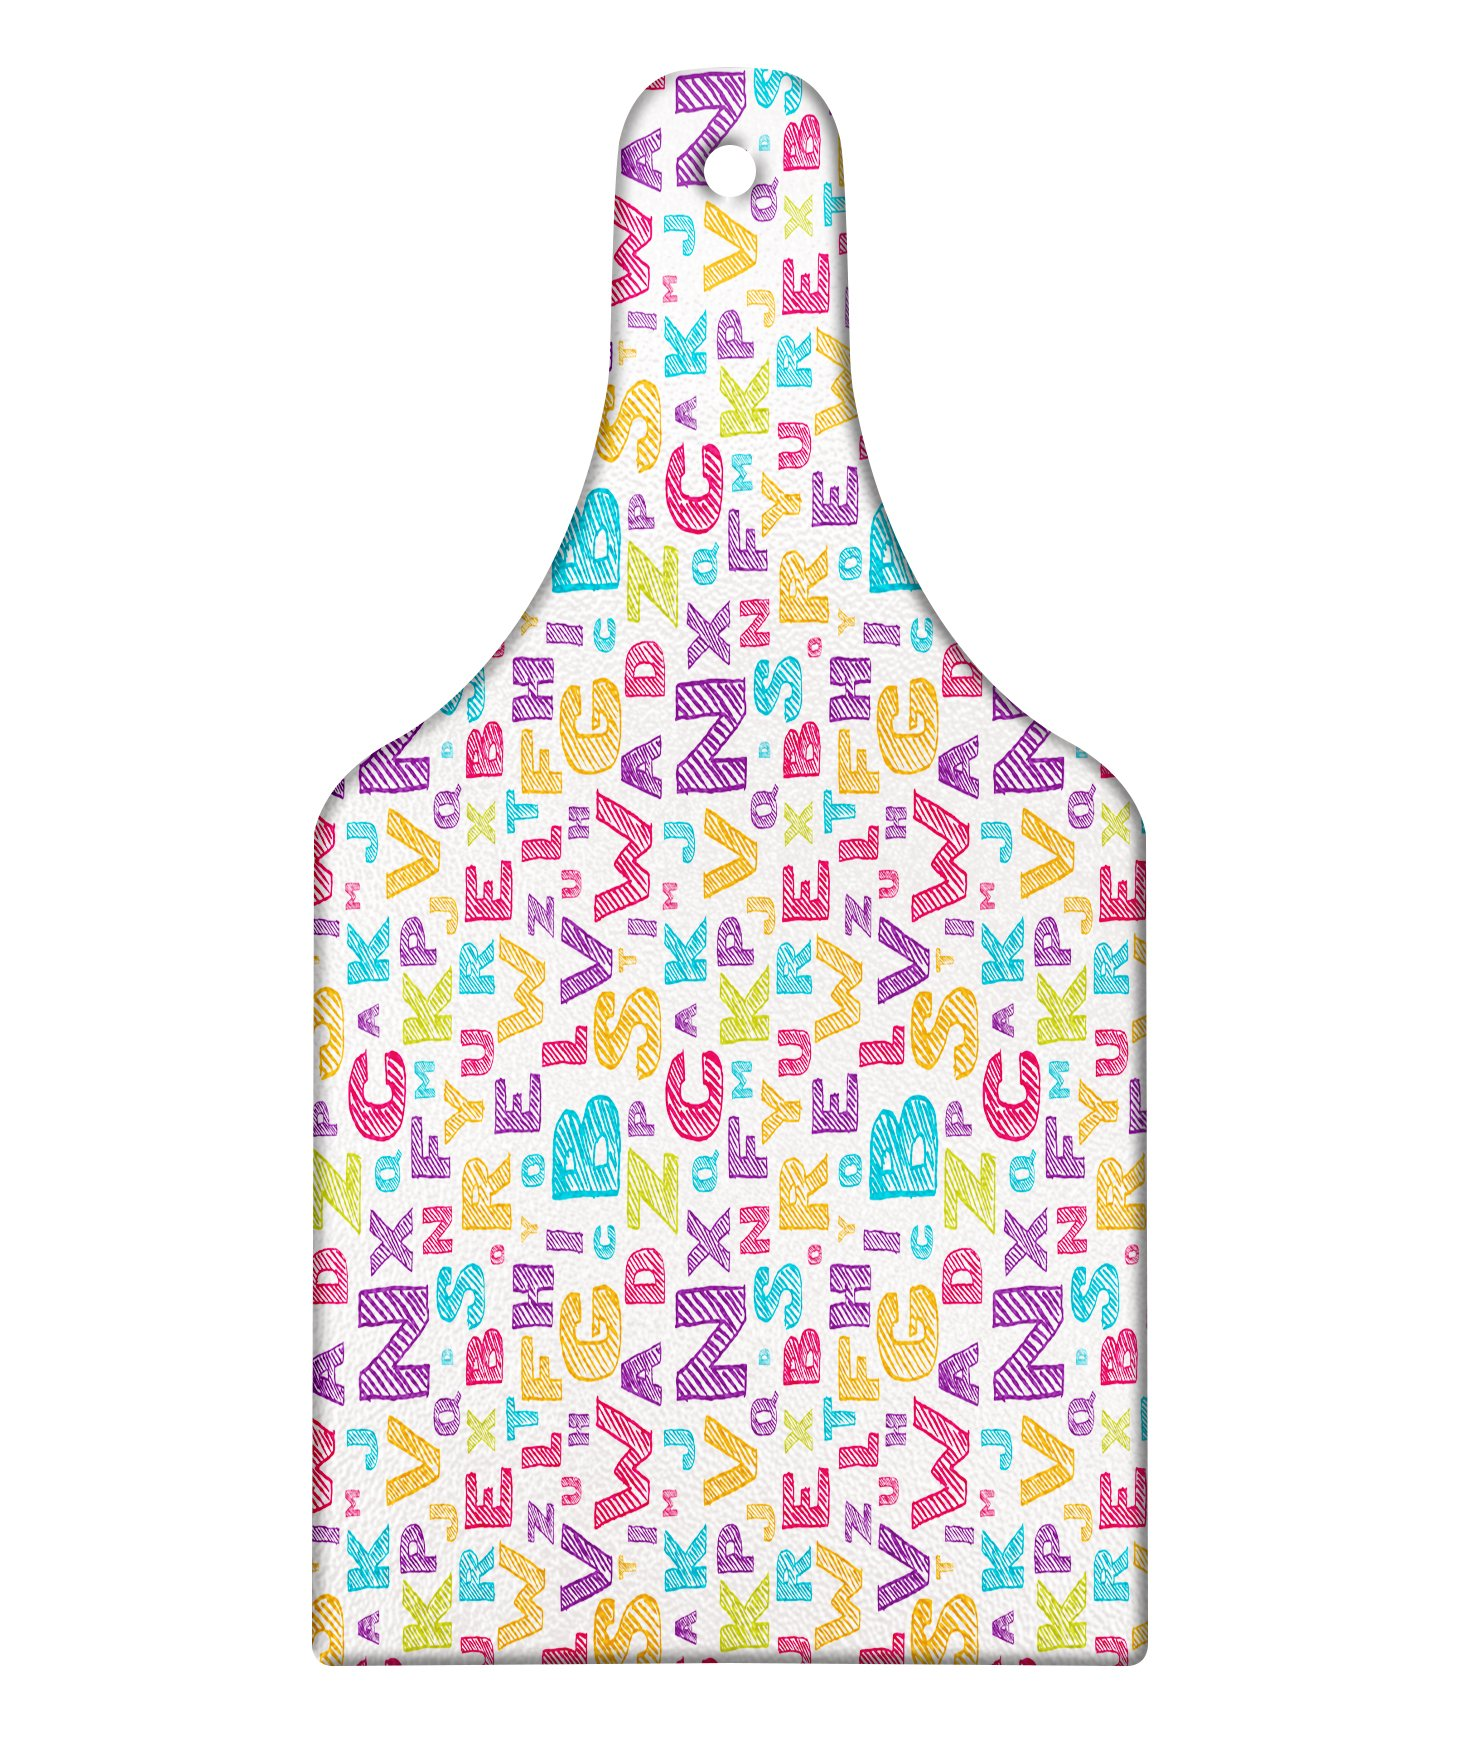 Lunarable ABC Kids Cutting Board, Scratched Letters Primary School Capital Fonts Study Pupils Creative Kids Artwork, Decorative Tempered Glass Cutting and Serving Board, Wine Bottle Shape, Multicolor